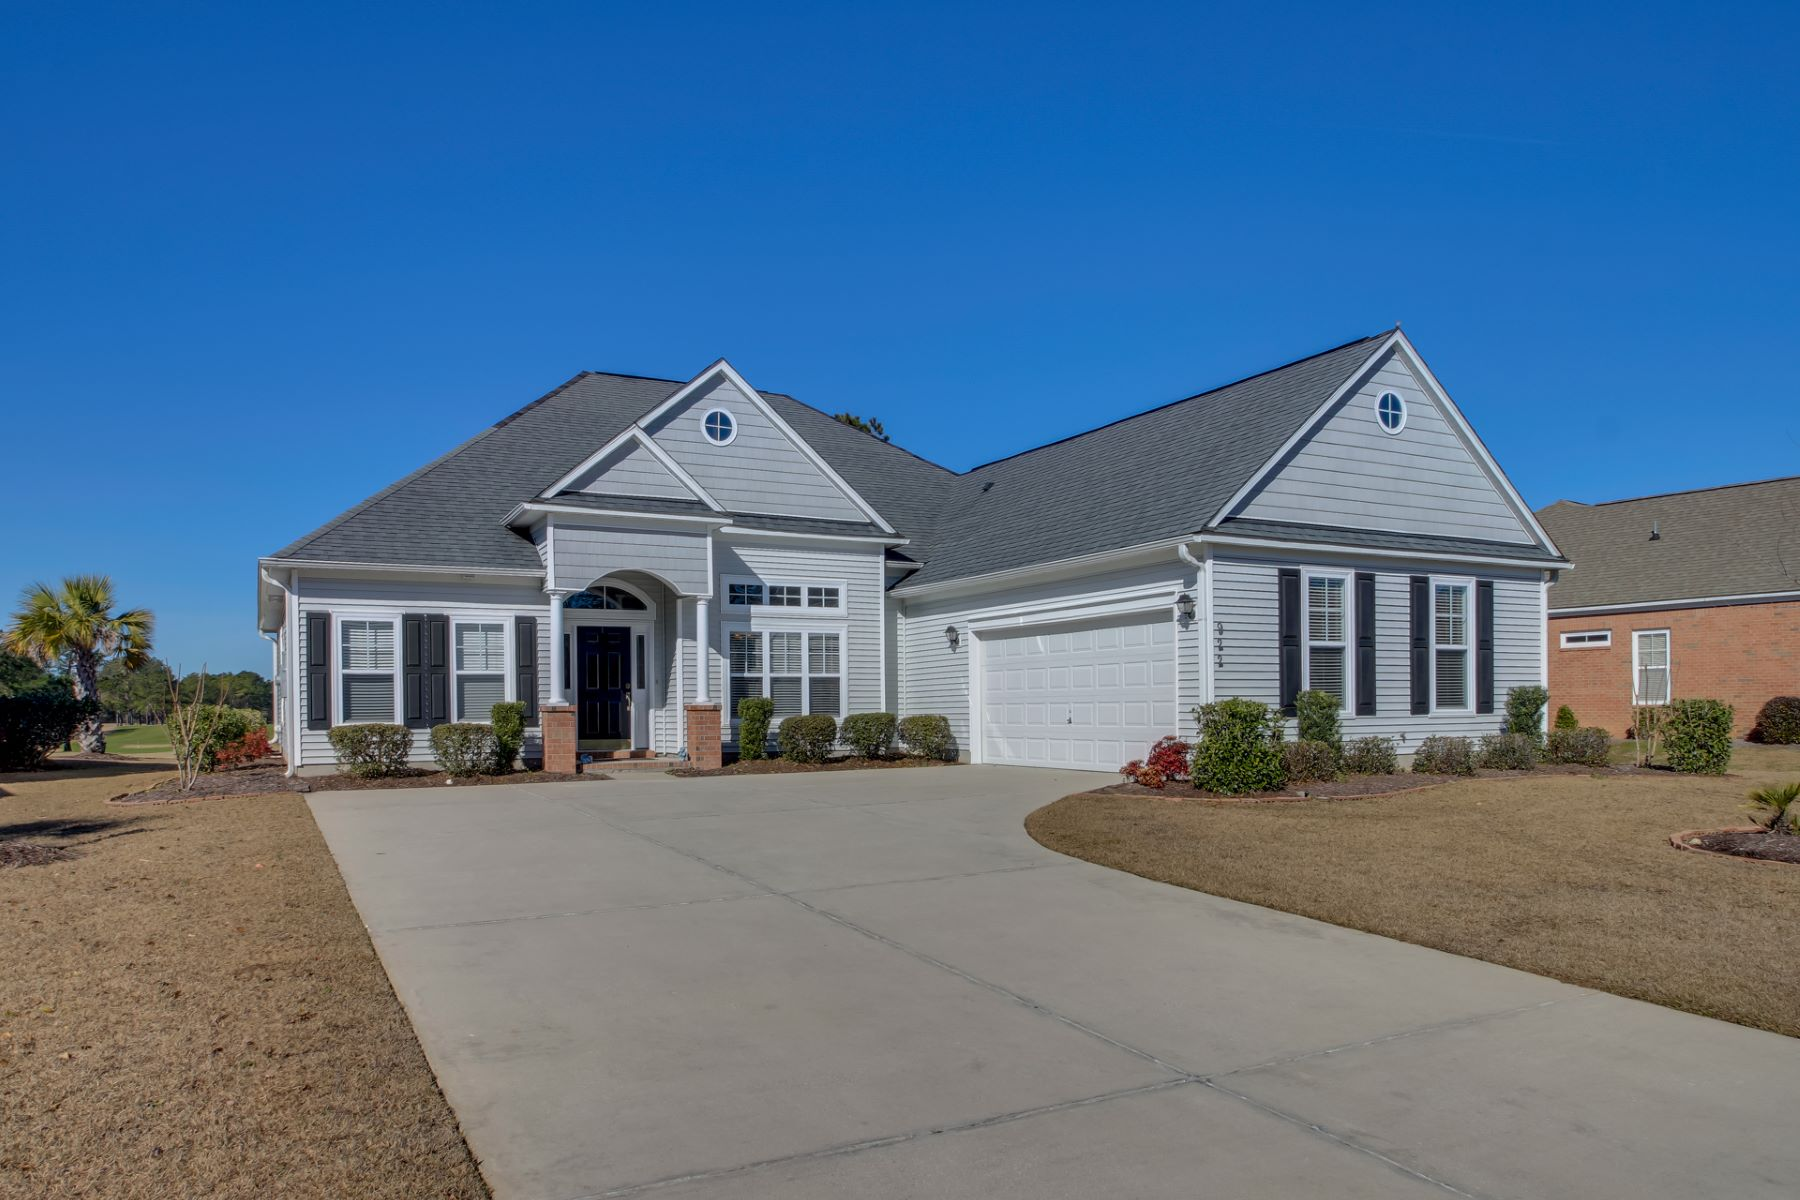 Single Family Home for Sale at Meadowlands Serenity 922 Meadowland Trail NW Calabash, North Carolina, 28467 United States